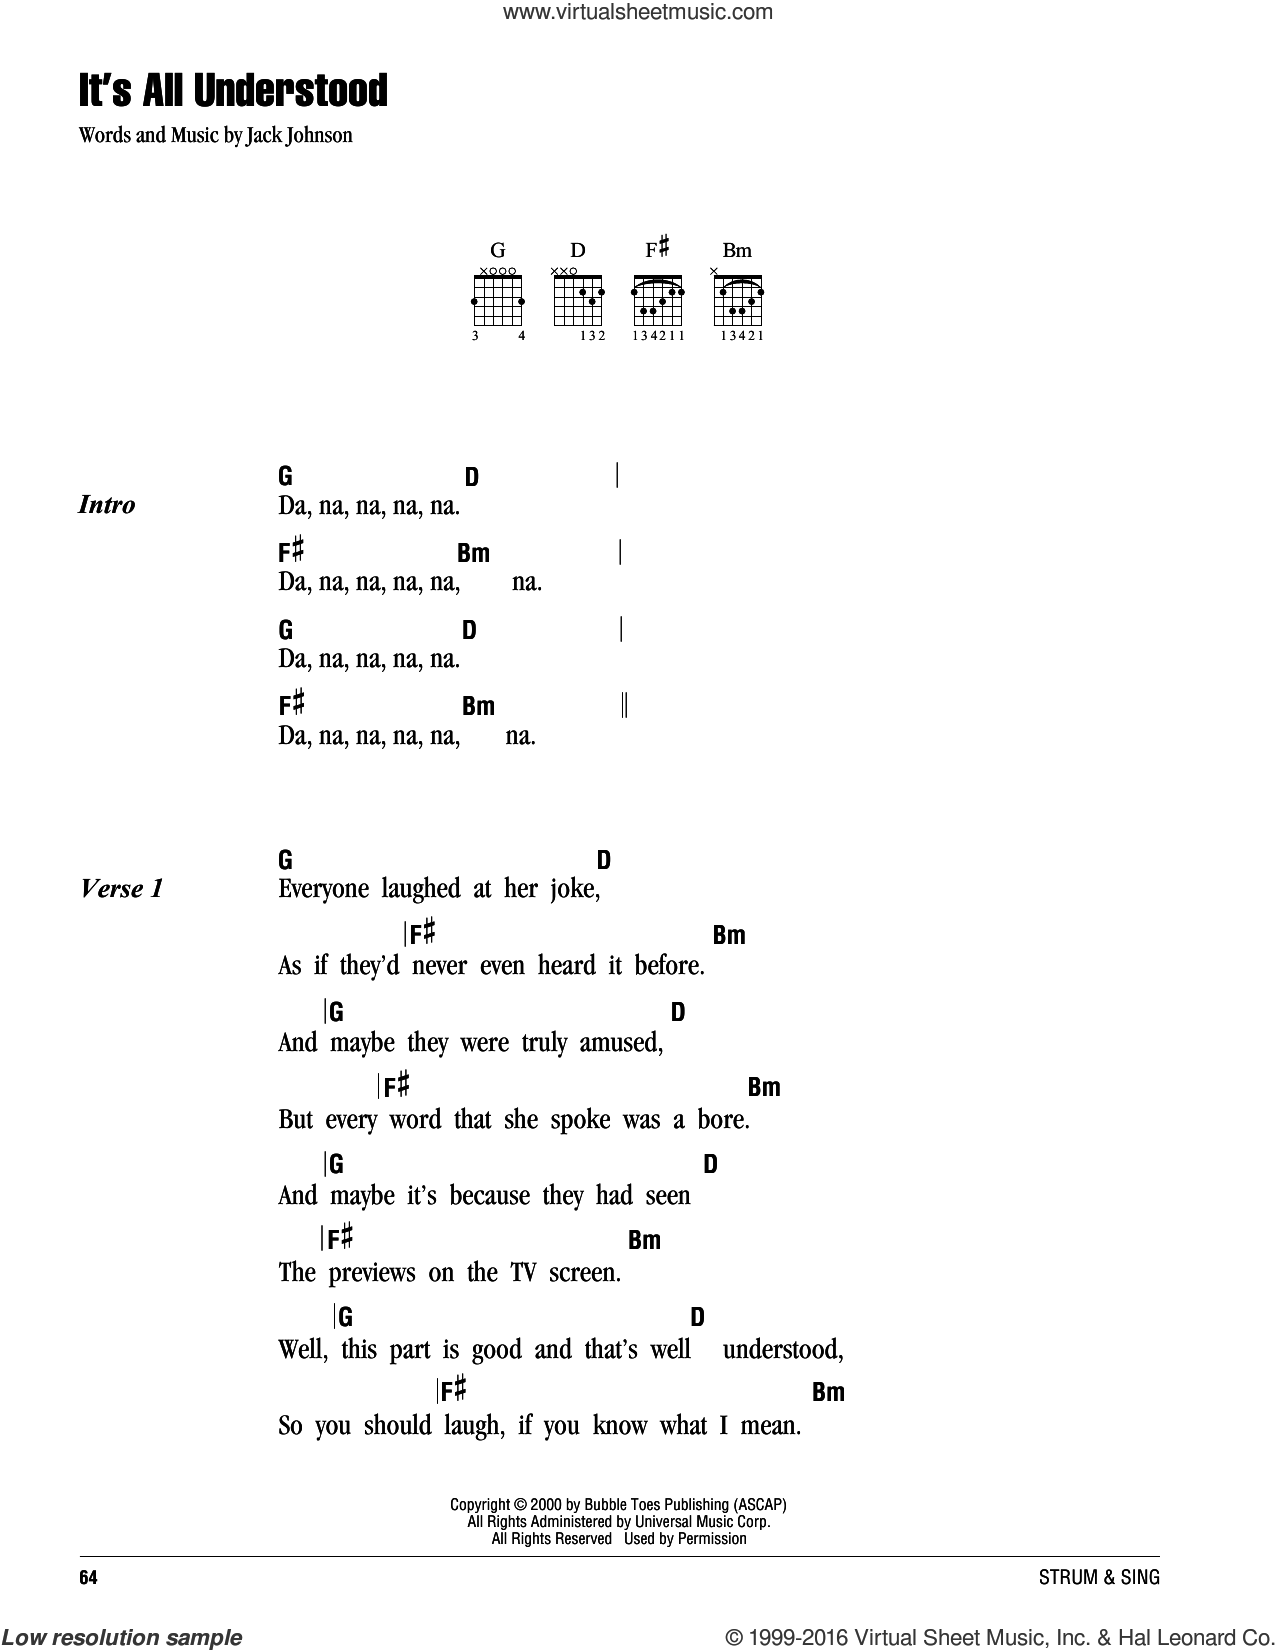 It's All Understood sheet music for guitar (chords) by Jack Johnson. Score Image Preview.